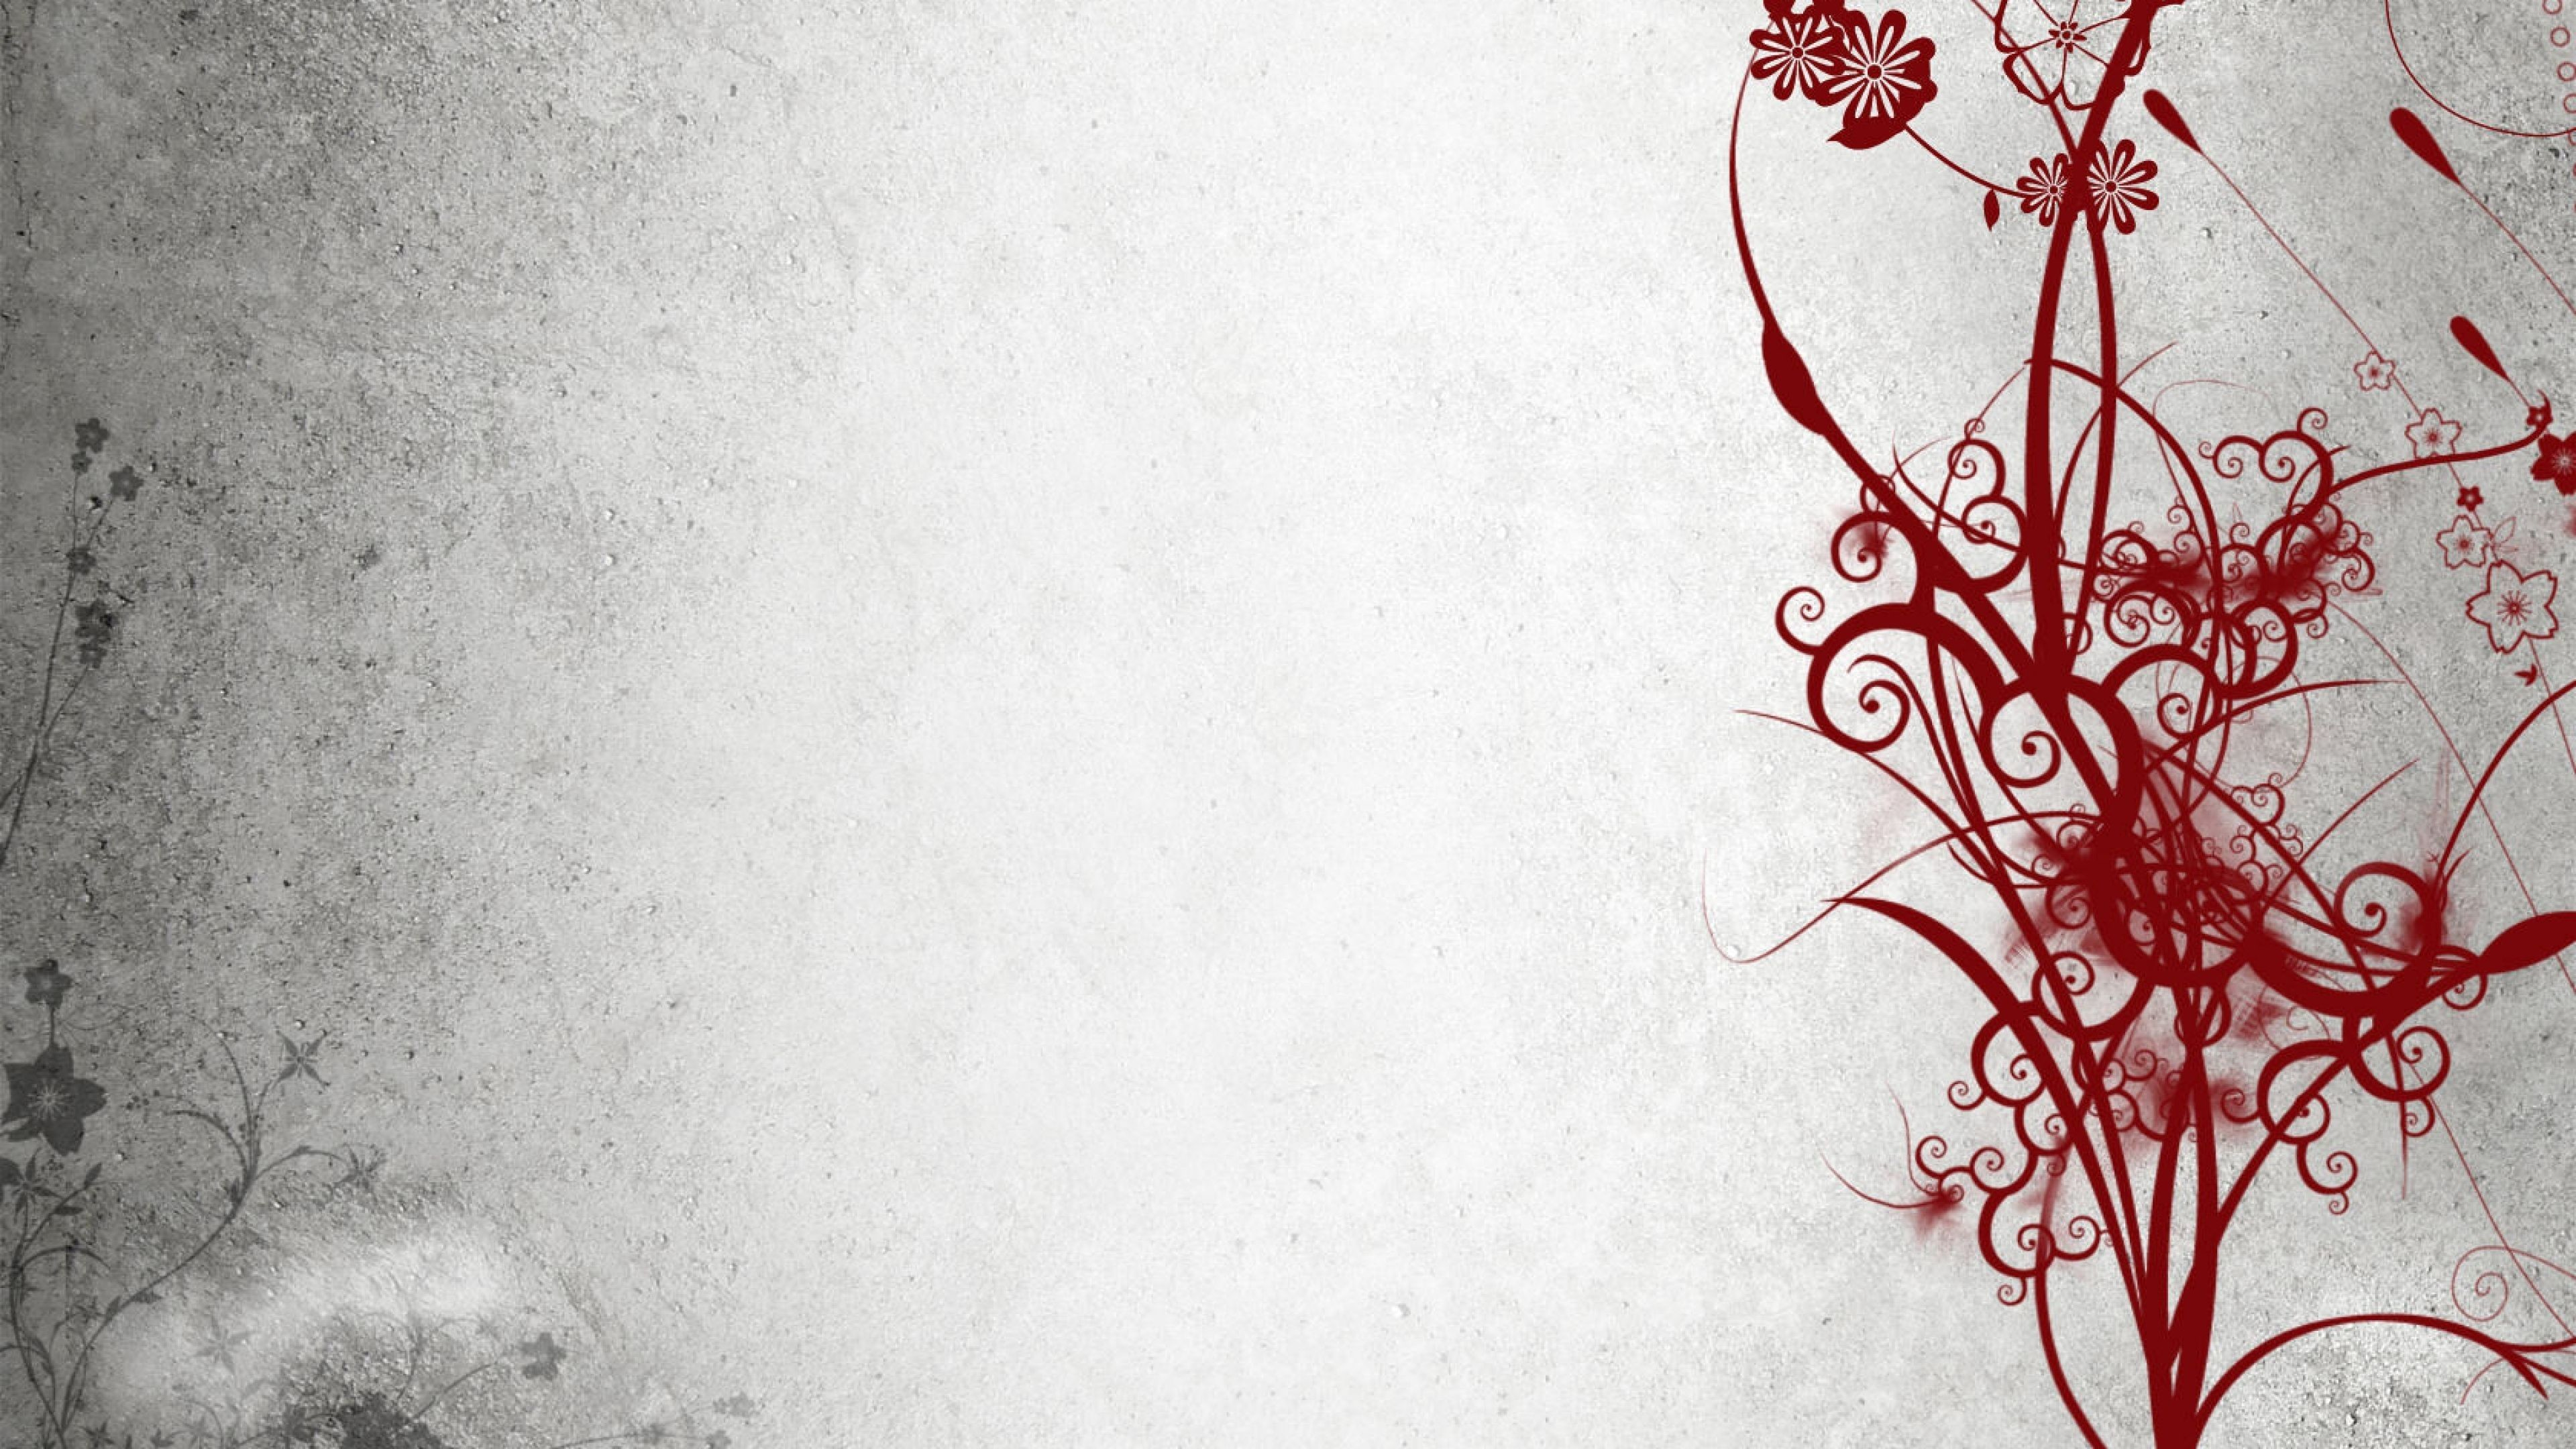 Download Wallpaper Abstract, Black, White, Red 4K Ultra .